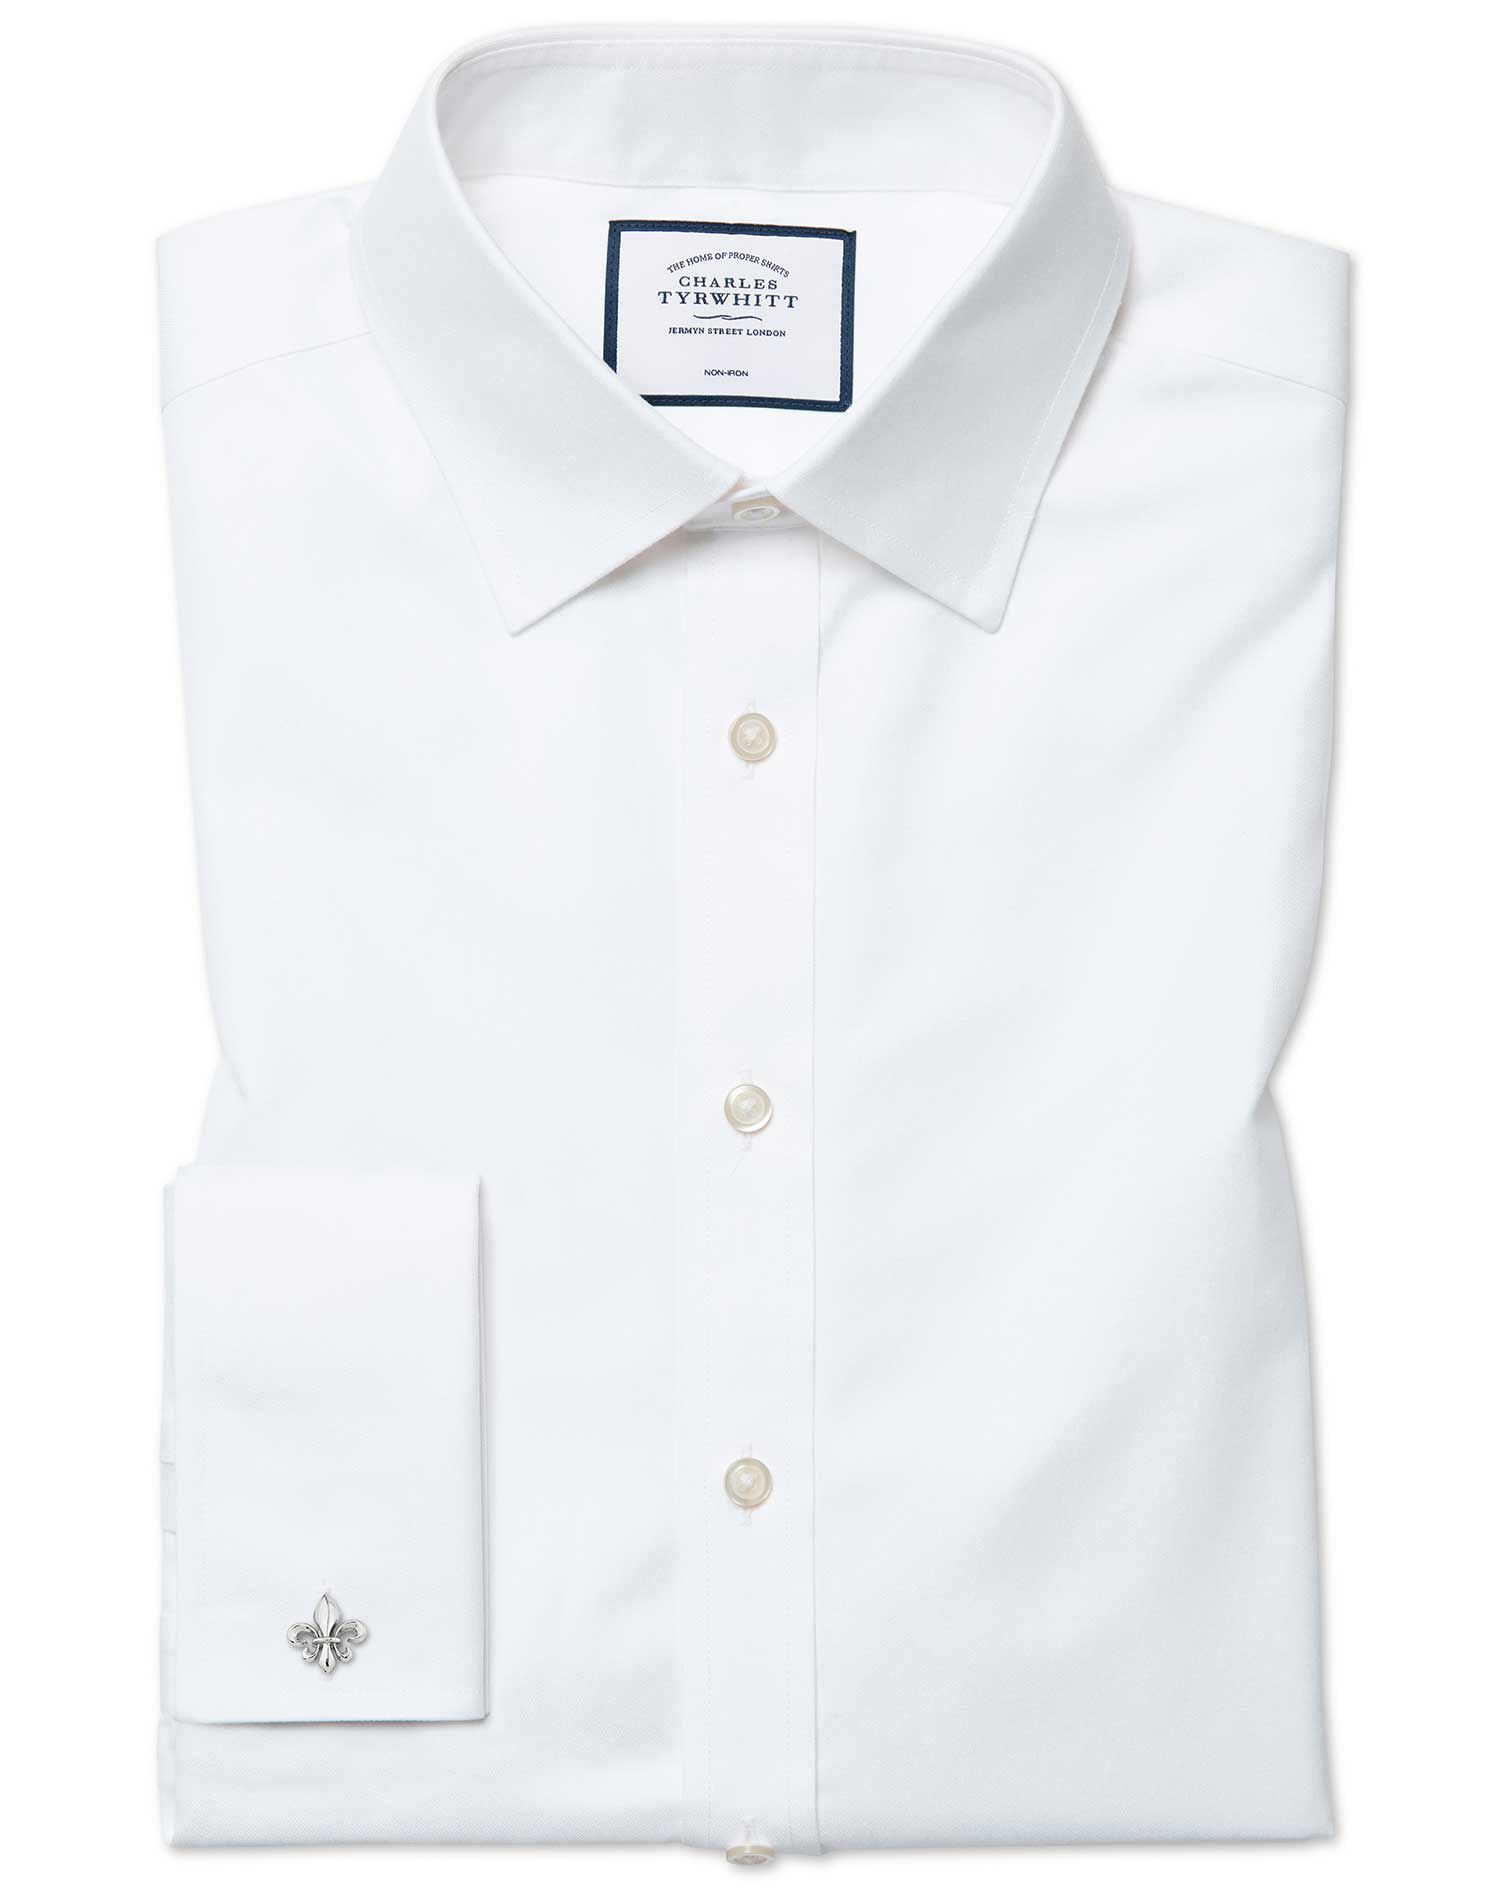 Extra Slim Fit Cutaway Non-Iron Twill White Cotton Formal Shirt Double Cuff Size 15/34 by Charles Ty